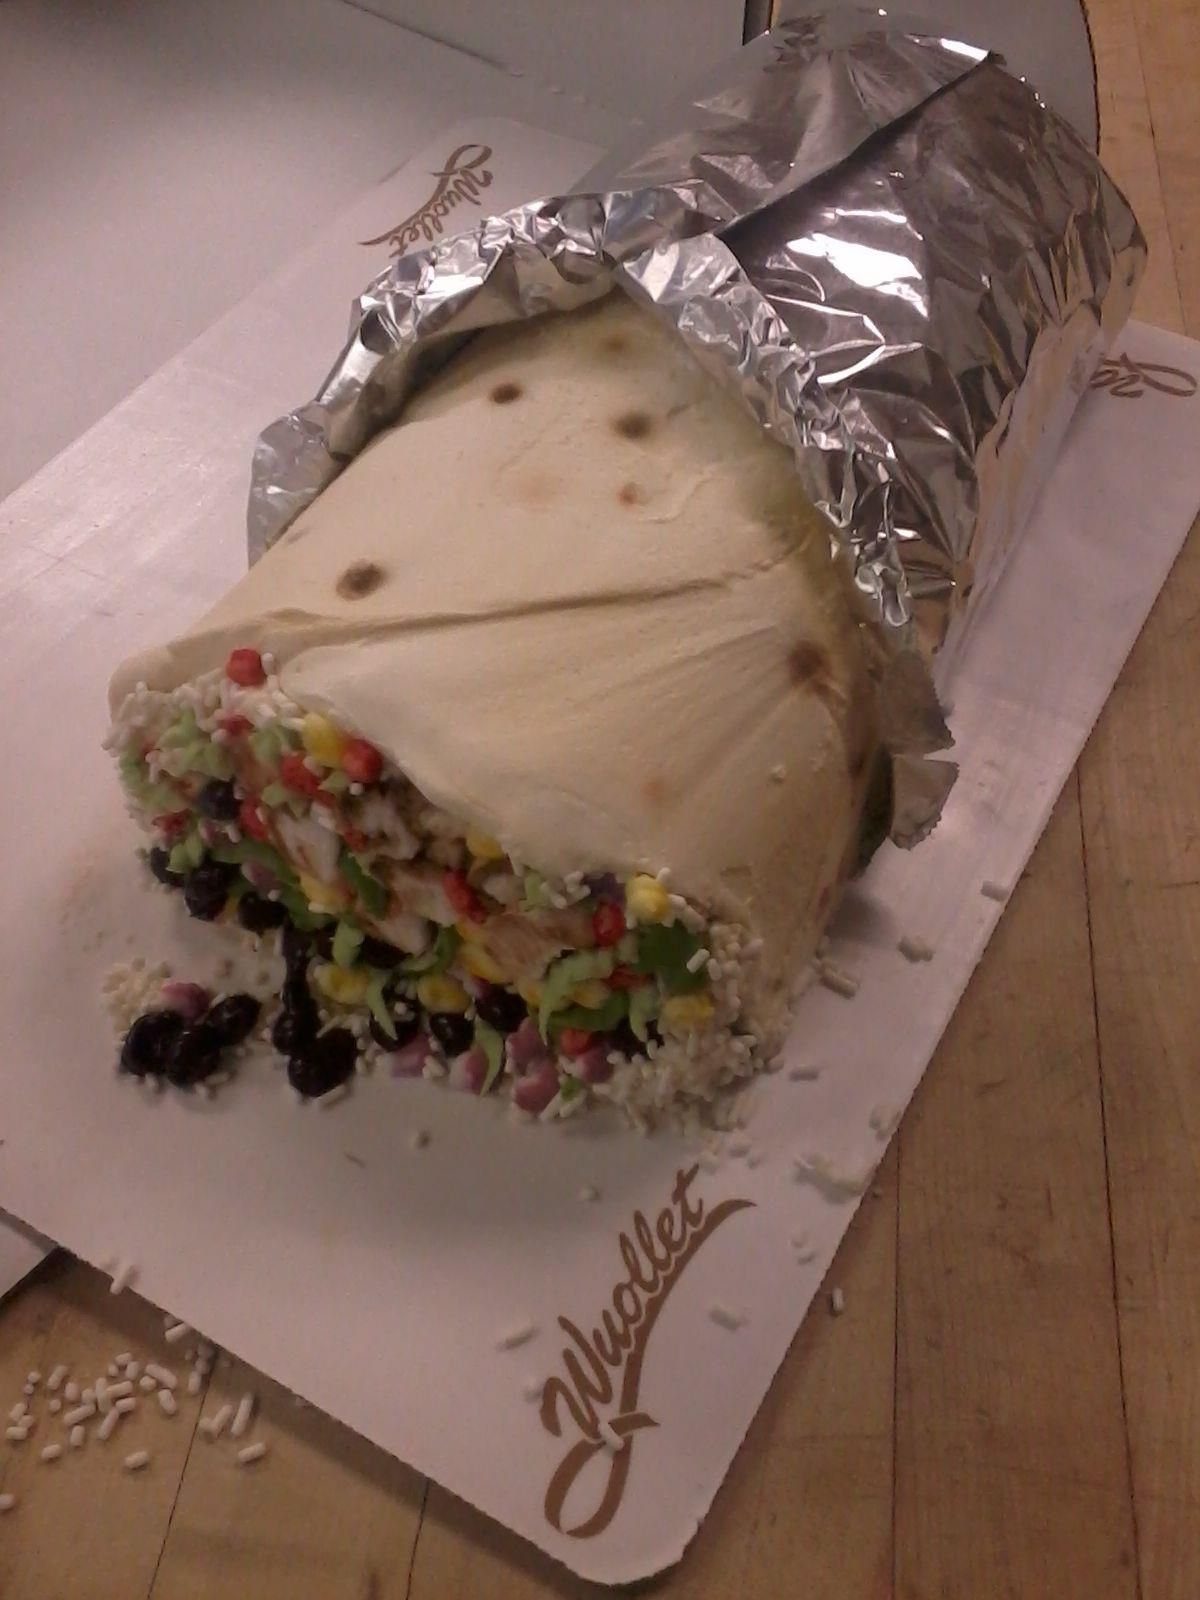 The Burrito Is A Lie (it's Actually A Cake)